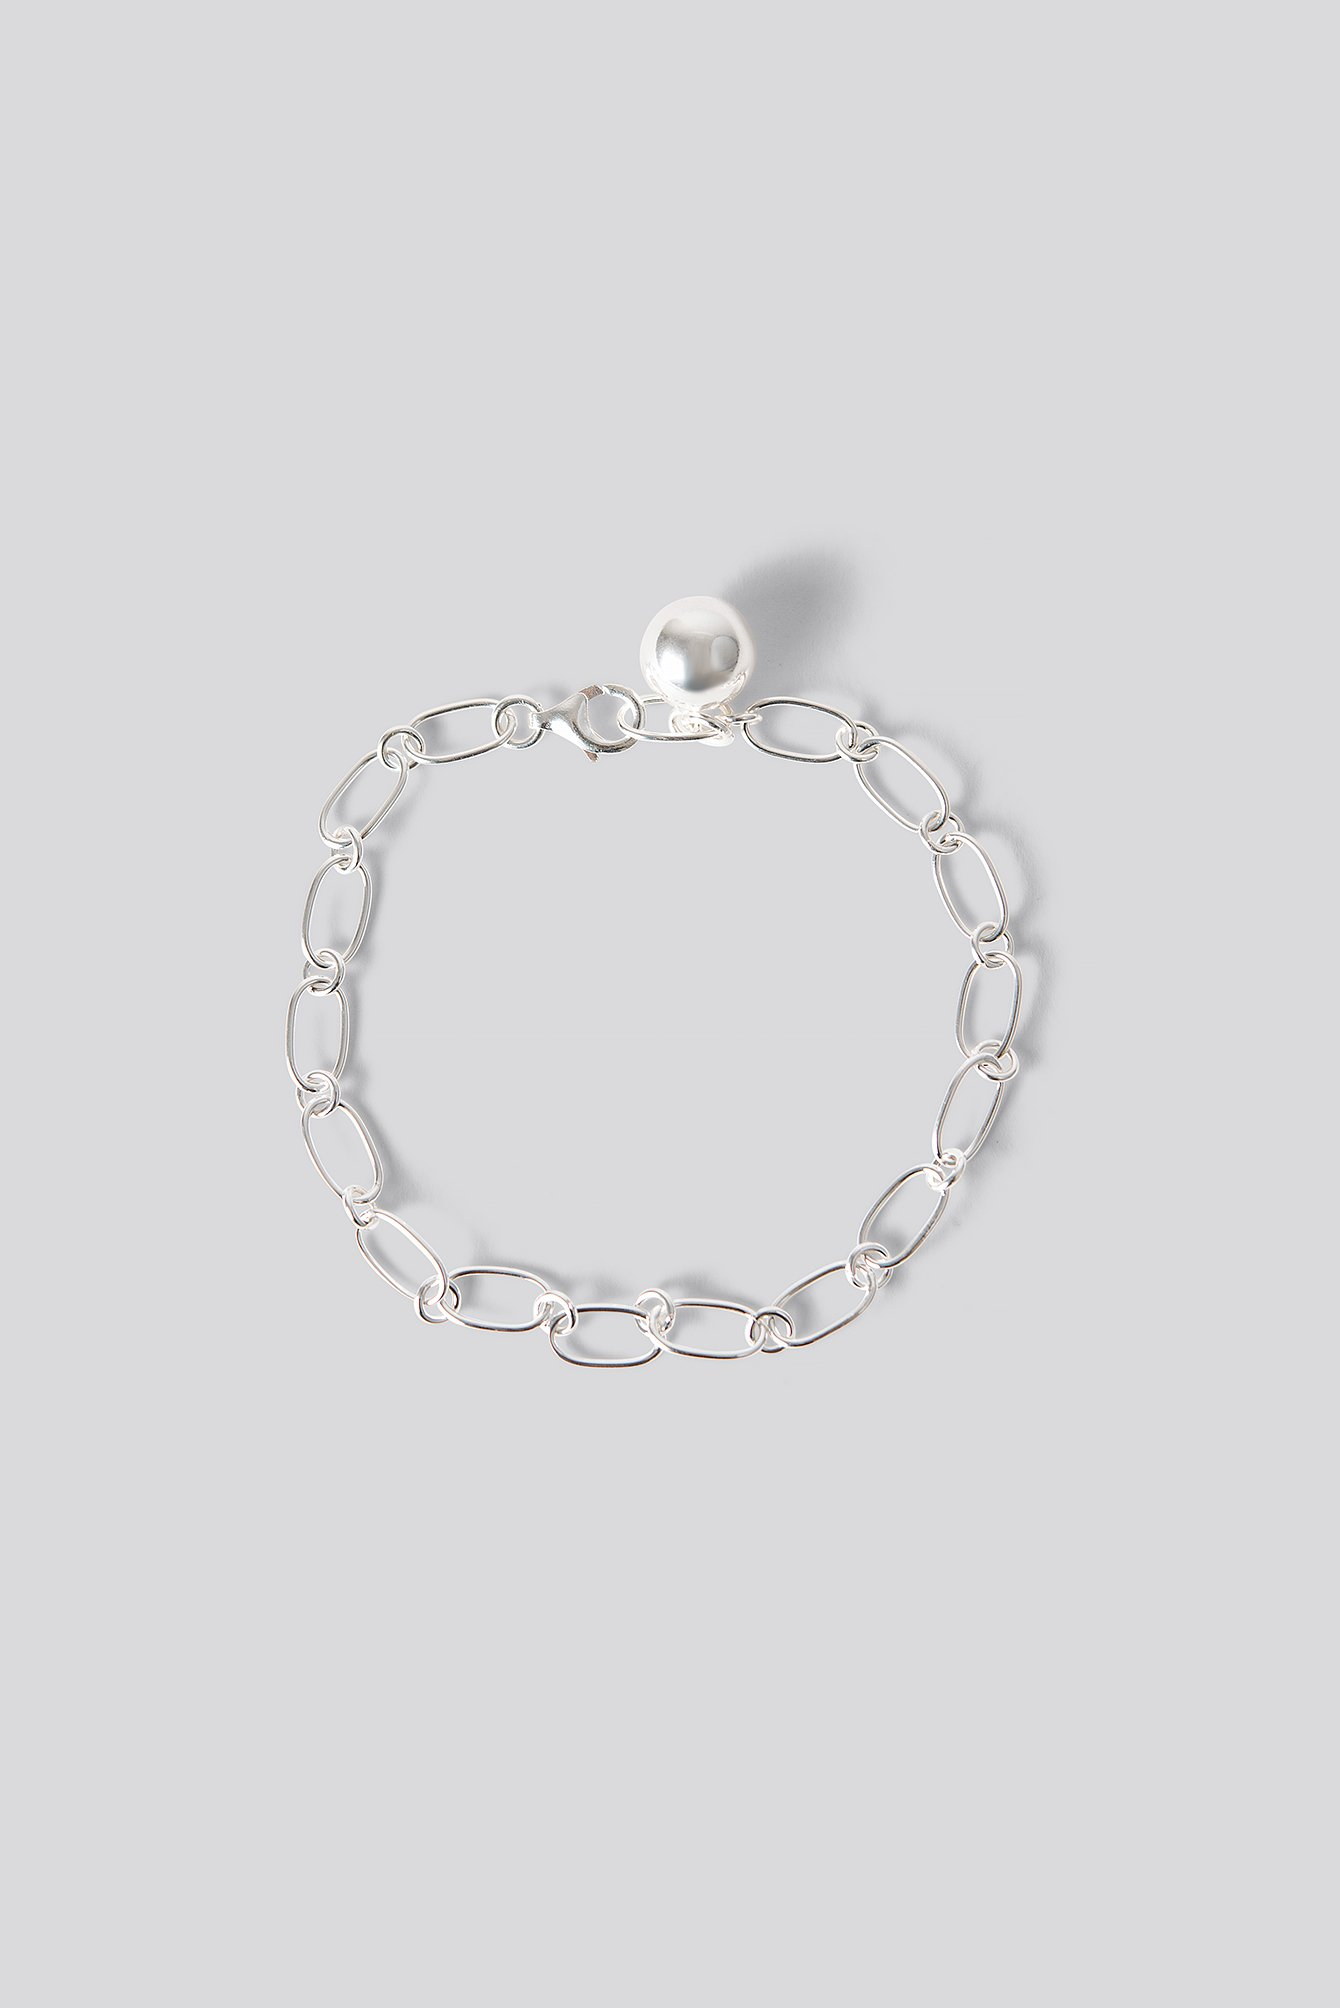 na-kd accessories -  Sterling Silver Thin Chain Bracelet - Silver